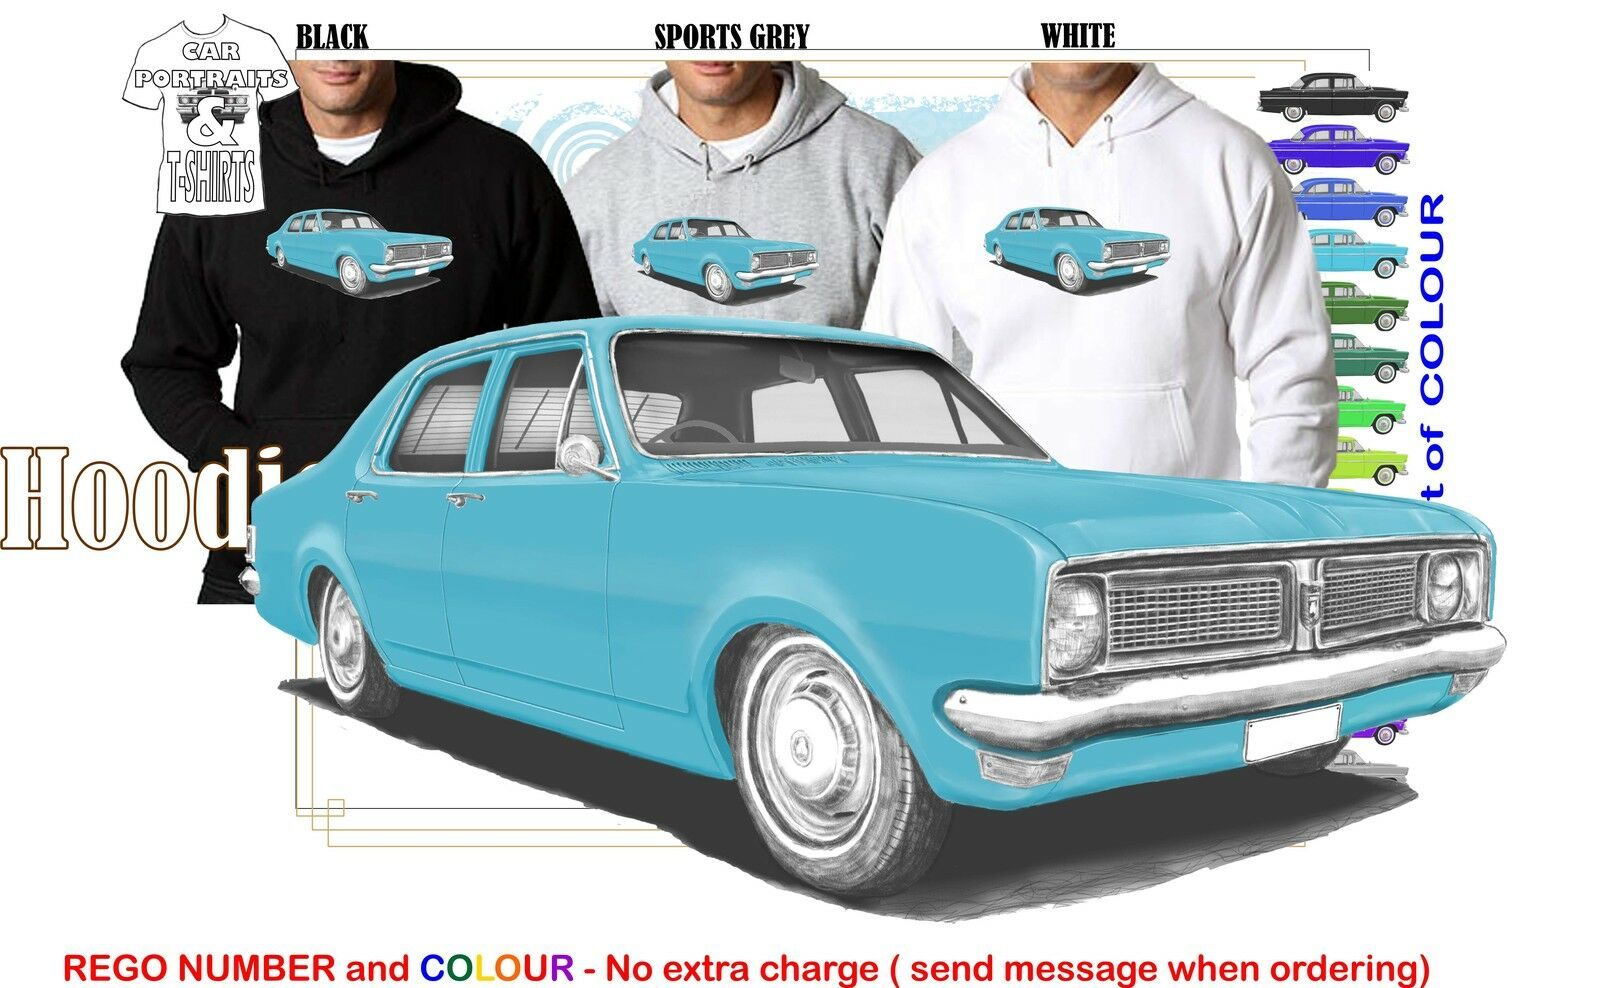 70-71 HG HOLDEN SEDAN HOODIE ILLUSTRATED CLASSIC RETRO MUSCLE SPORTS CAR